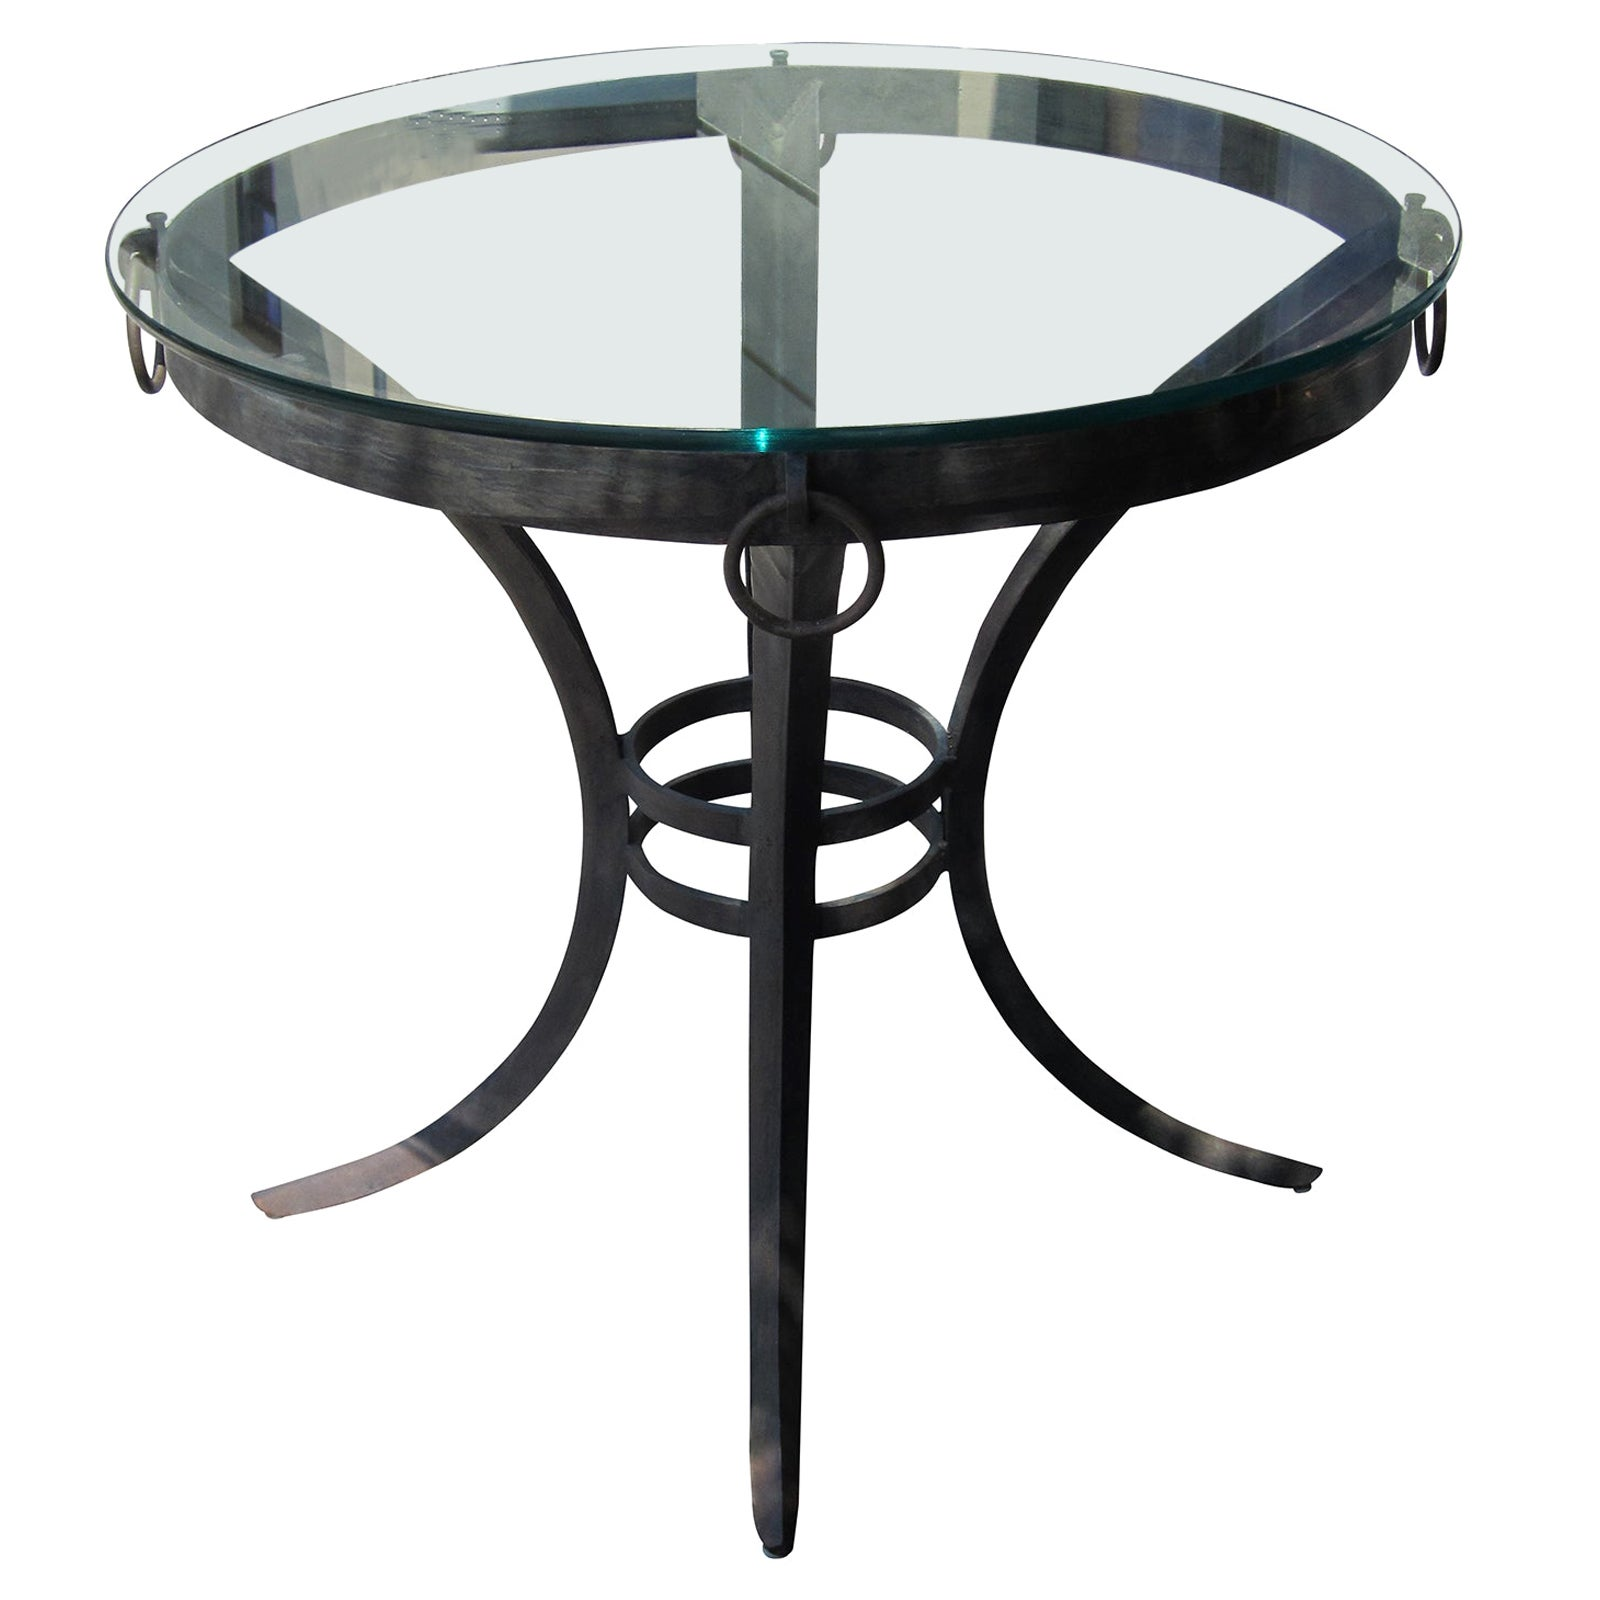 20th Century Round Iron Gueridon Table with Glass Top